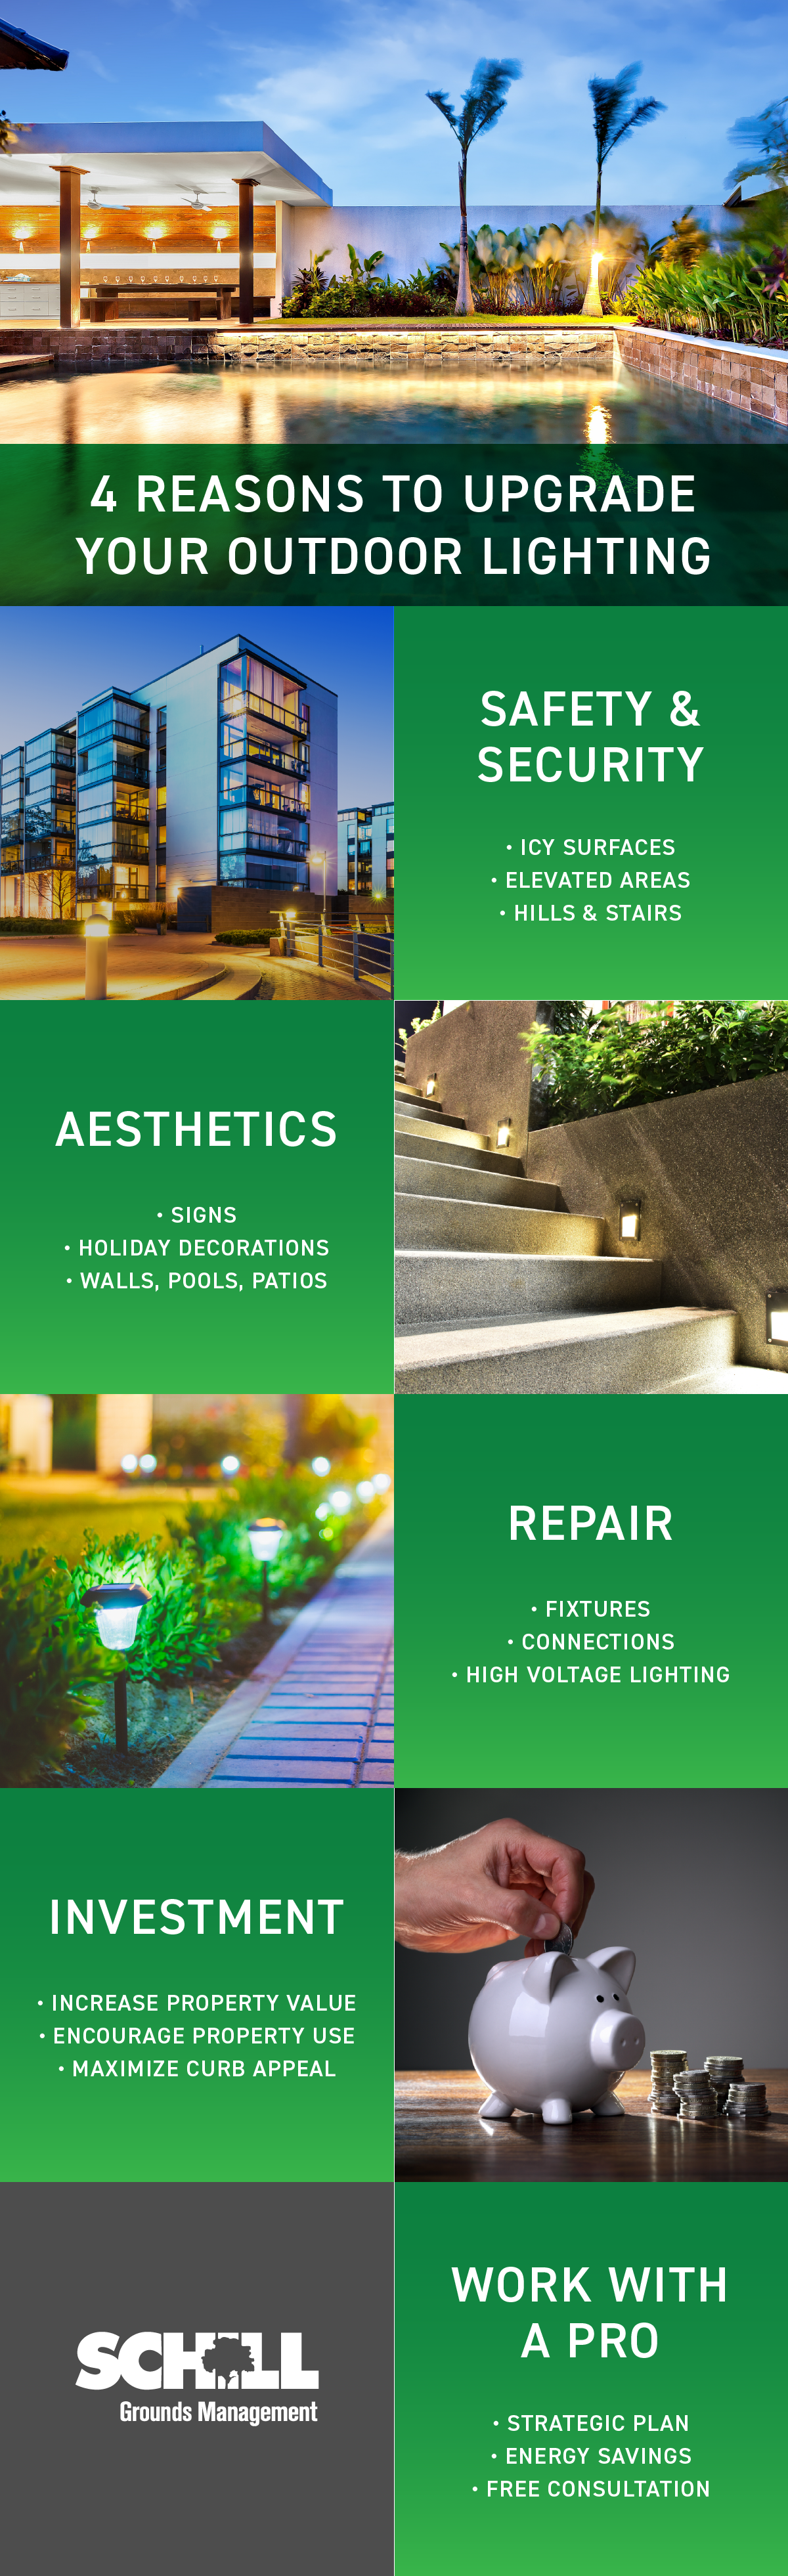 Schill Outdoor Lighting Blog_BLOG-1